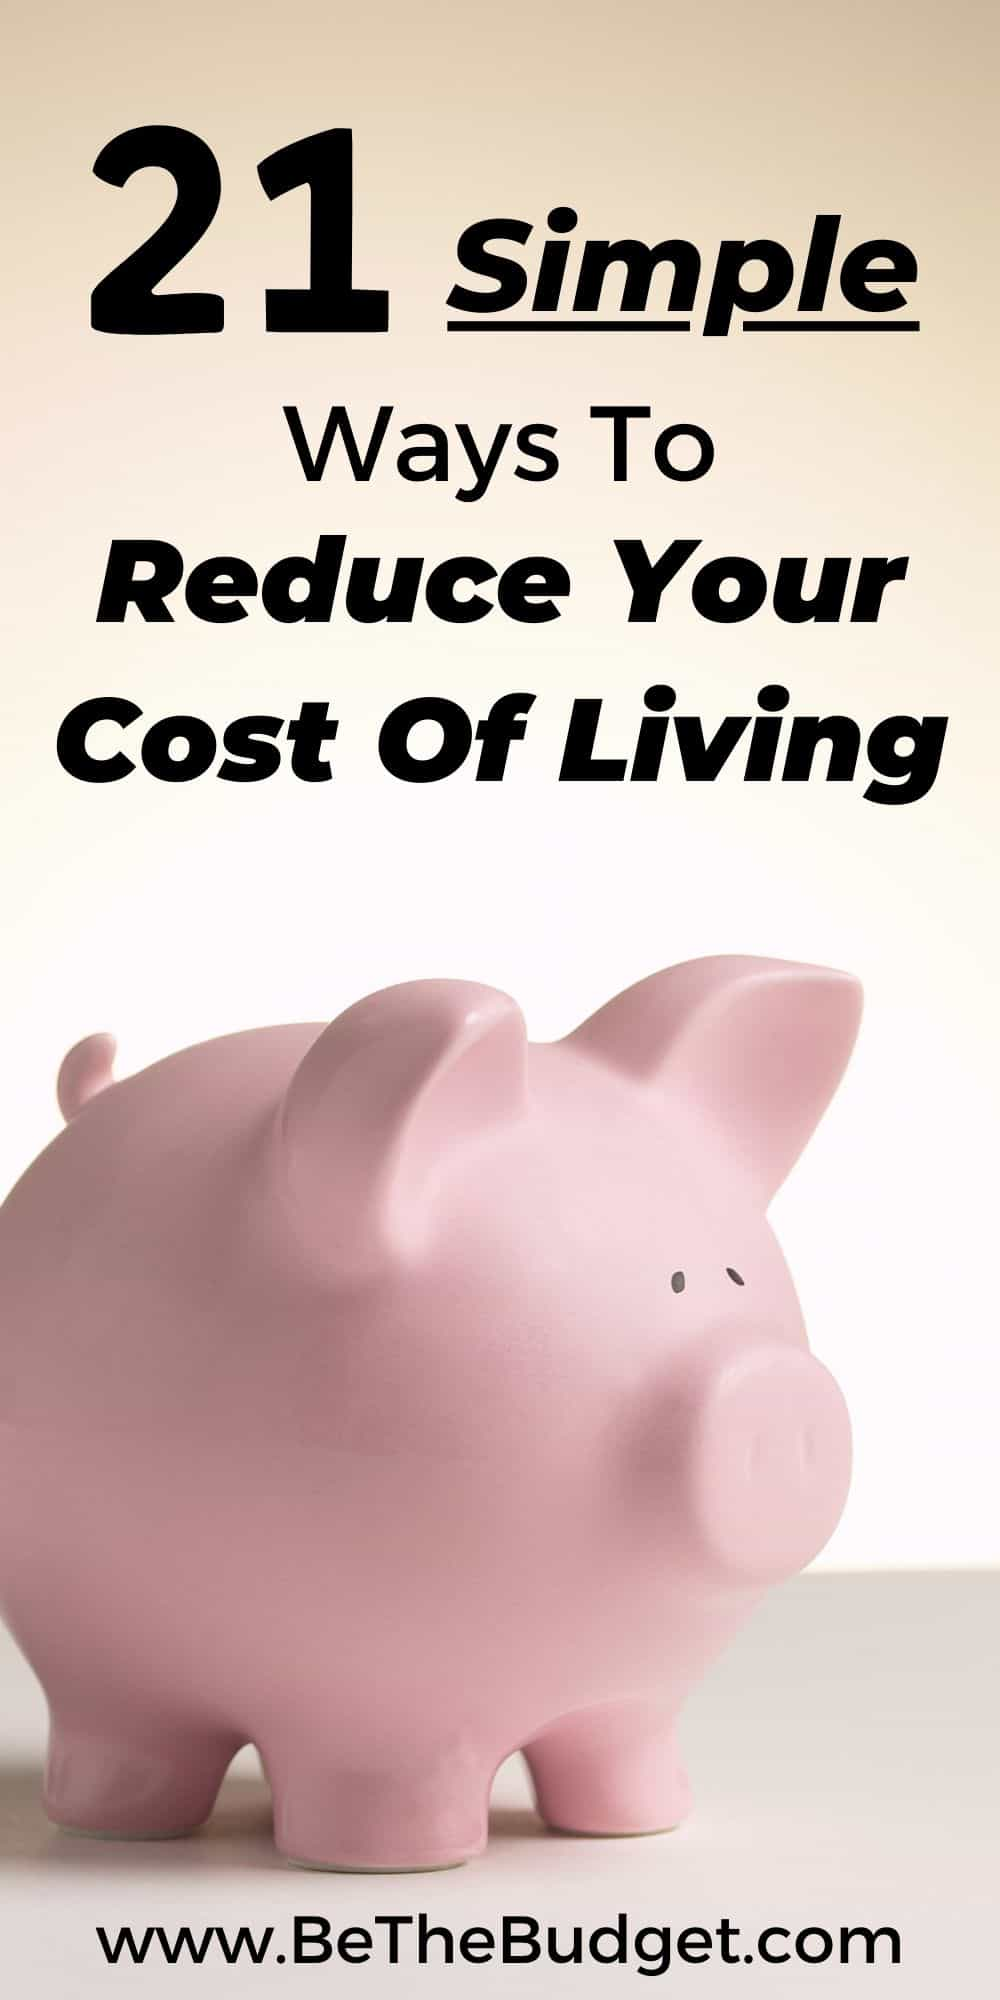 Reduce Your Cost Of Living: 21 Simple Ways | Be The Budget